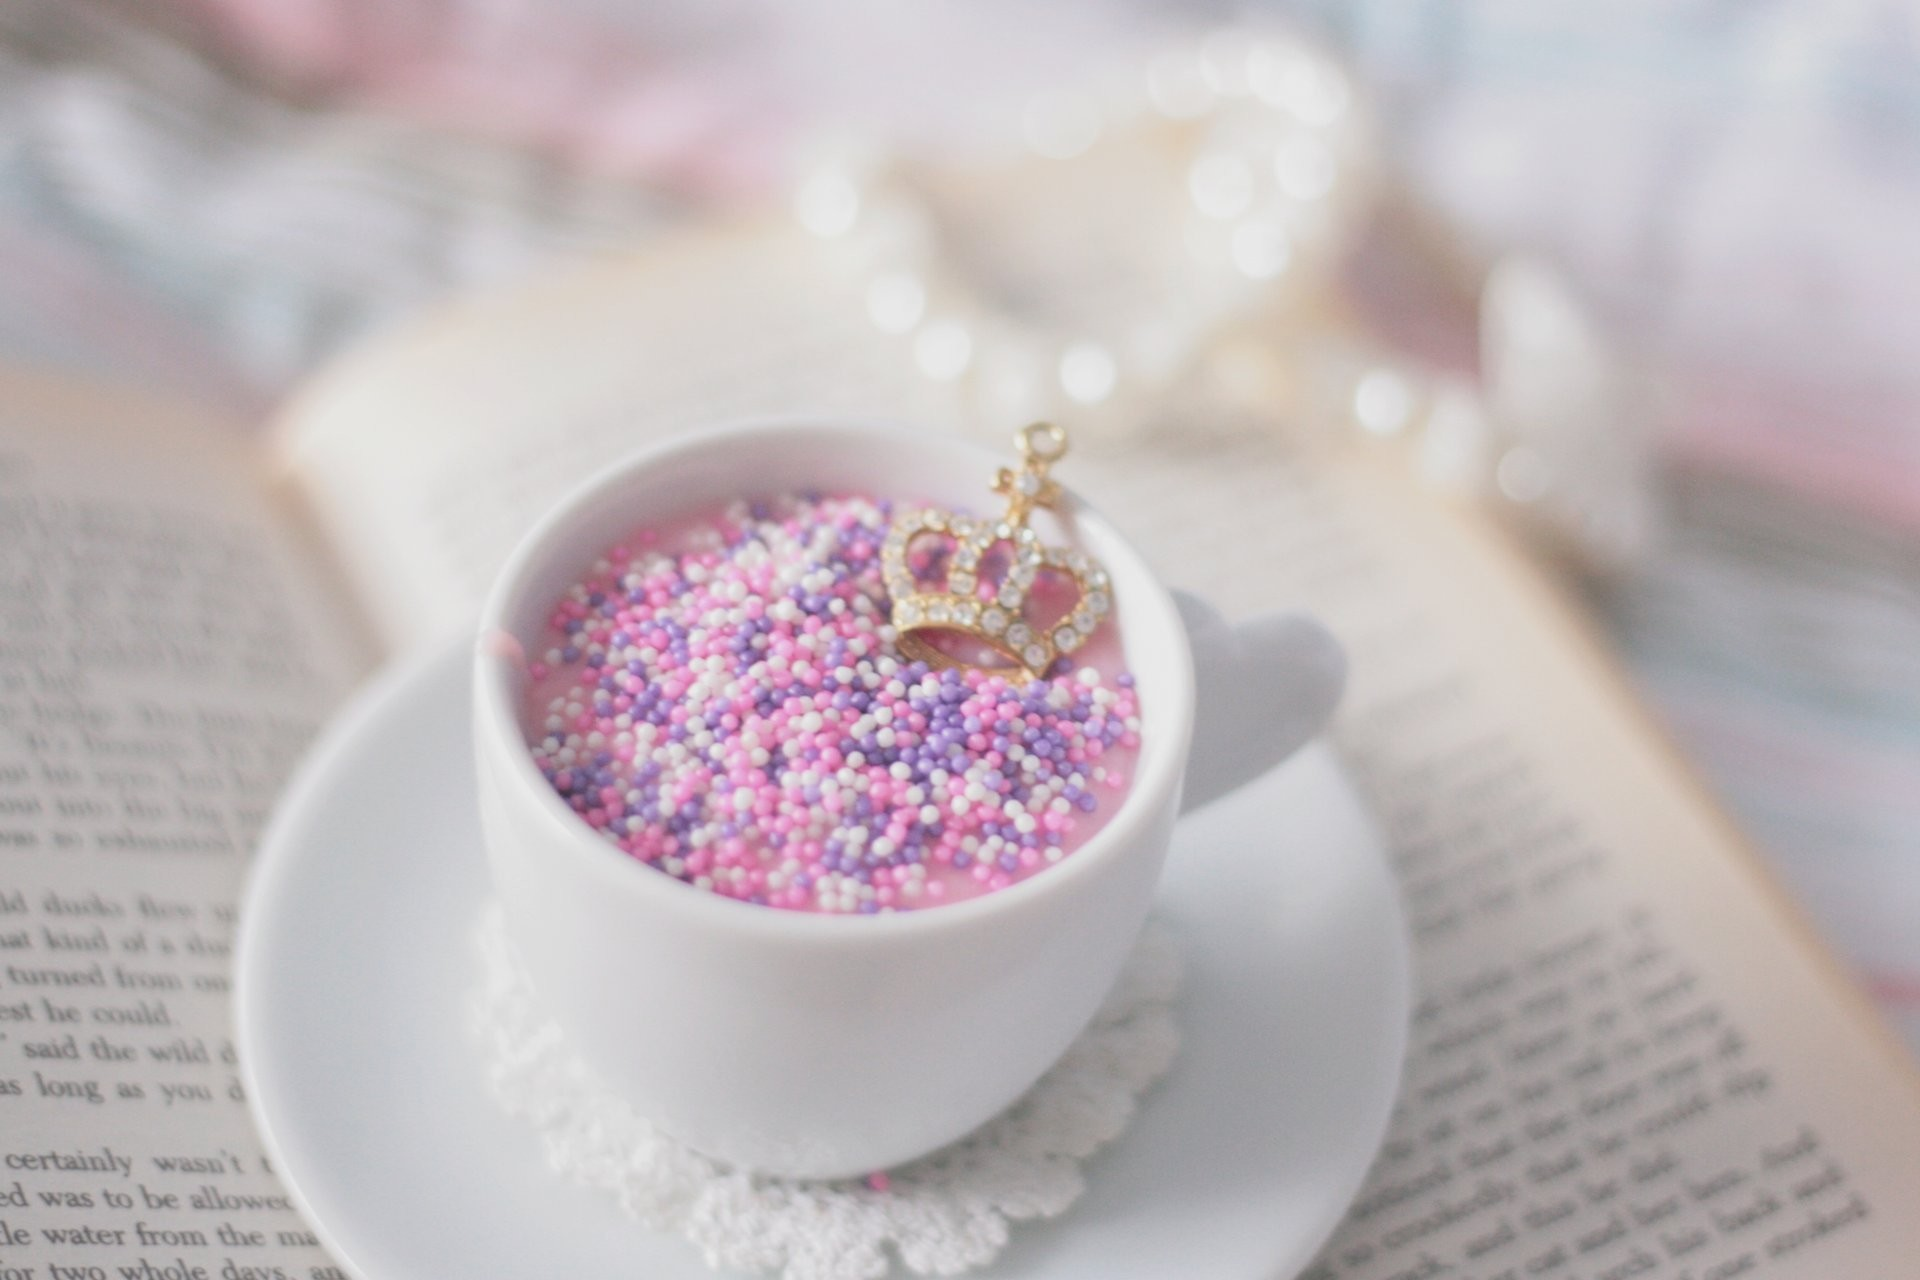 mood cup mug dish color bright bulbs small crown decoration book background wallpapers  desktop wallpaper widescreen. Your screen: 1024×1024